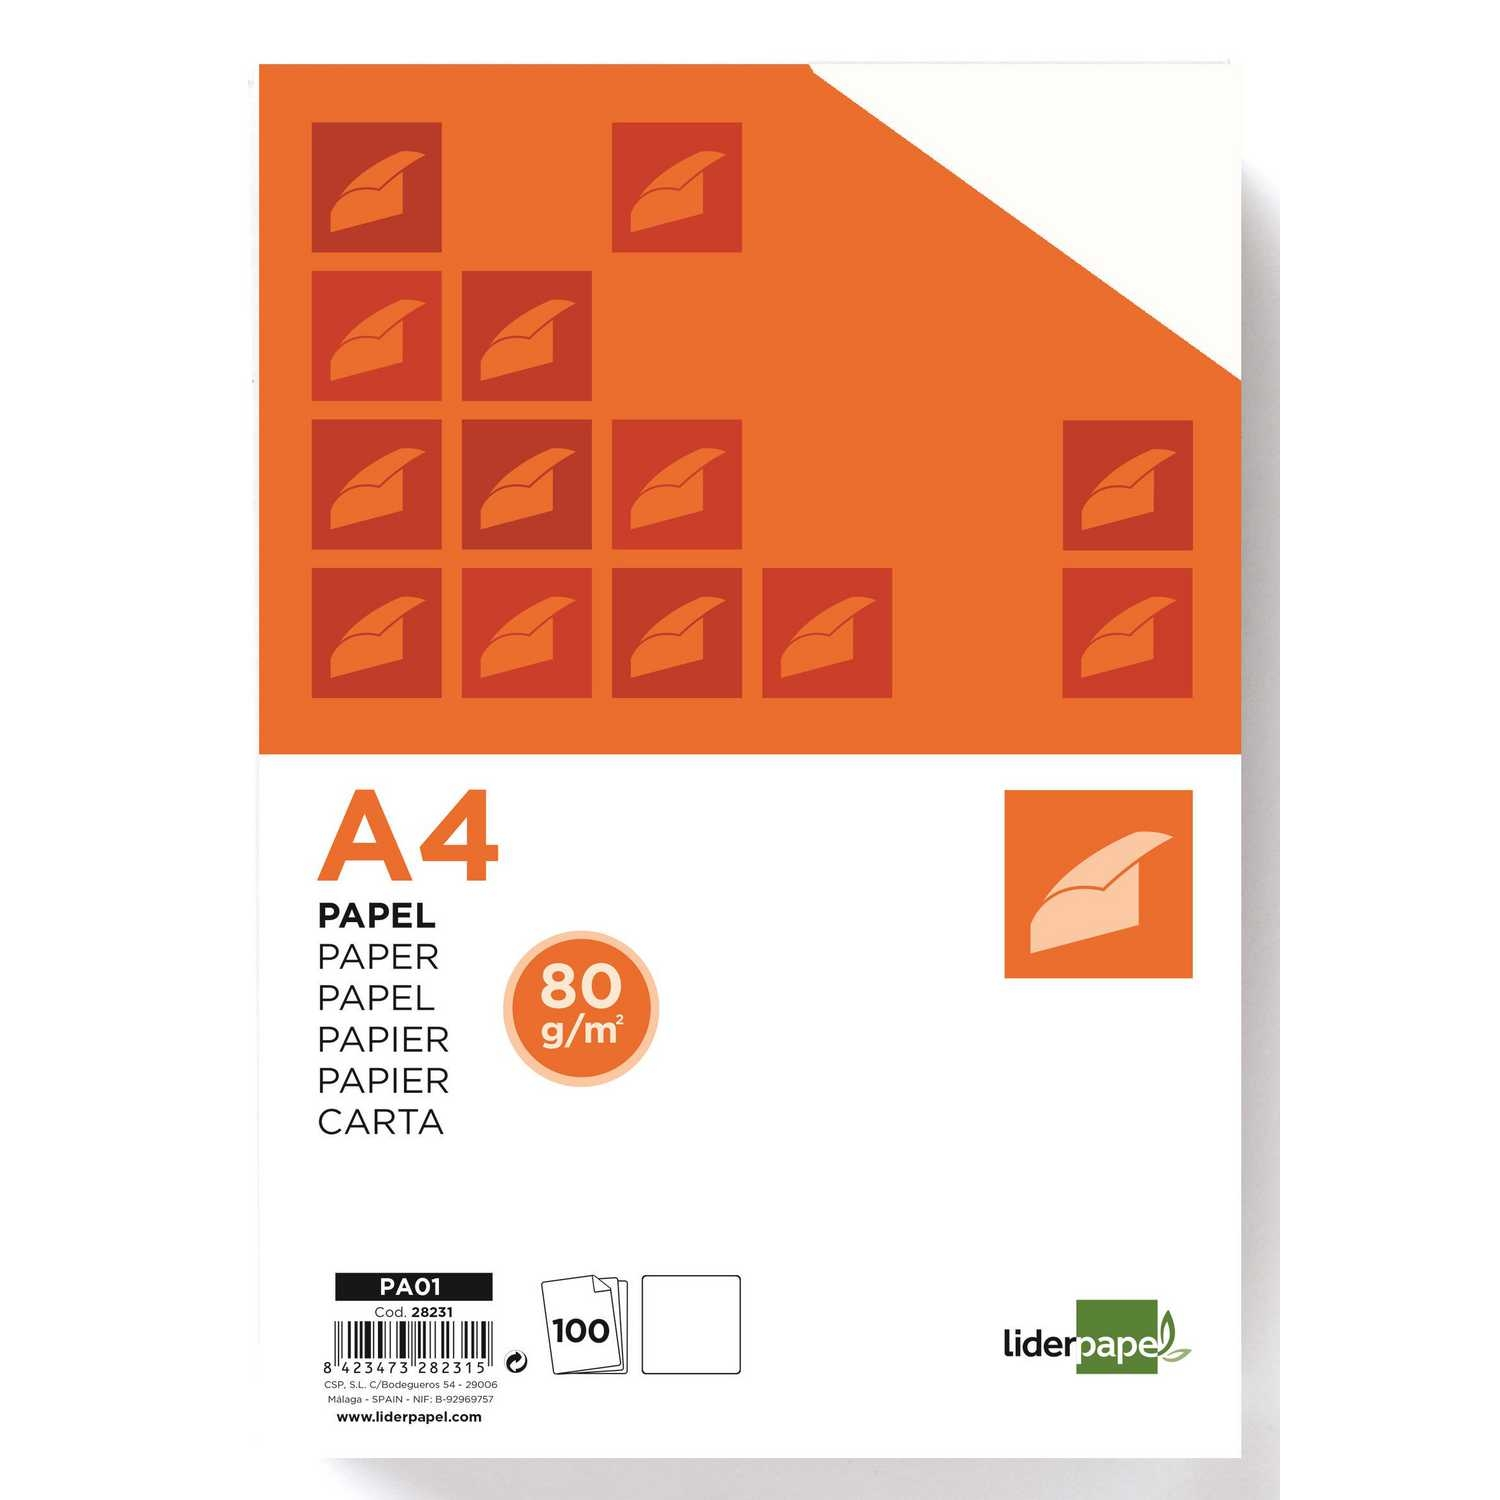 Paquete A4 100 Hojas A4 Liderpapel 80g/m2 Blanco